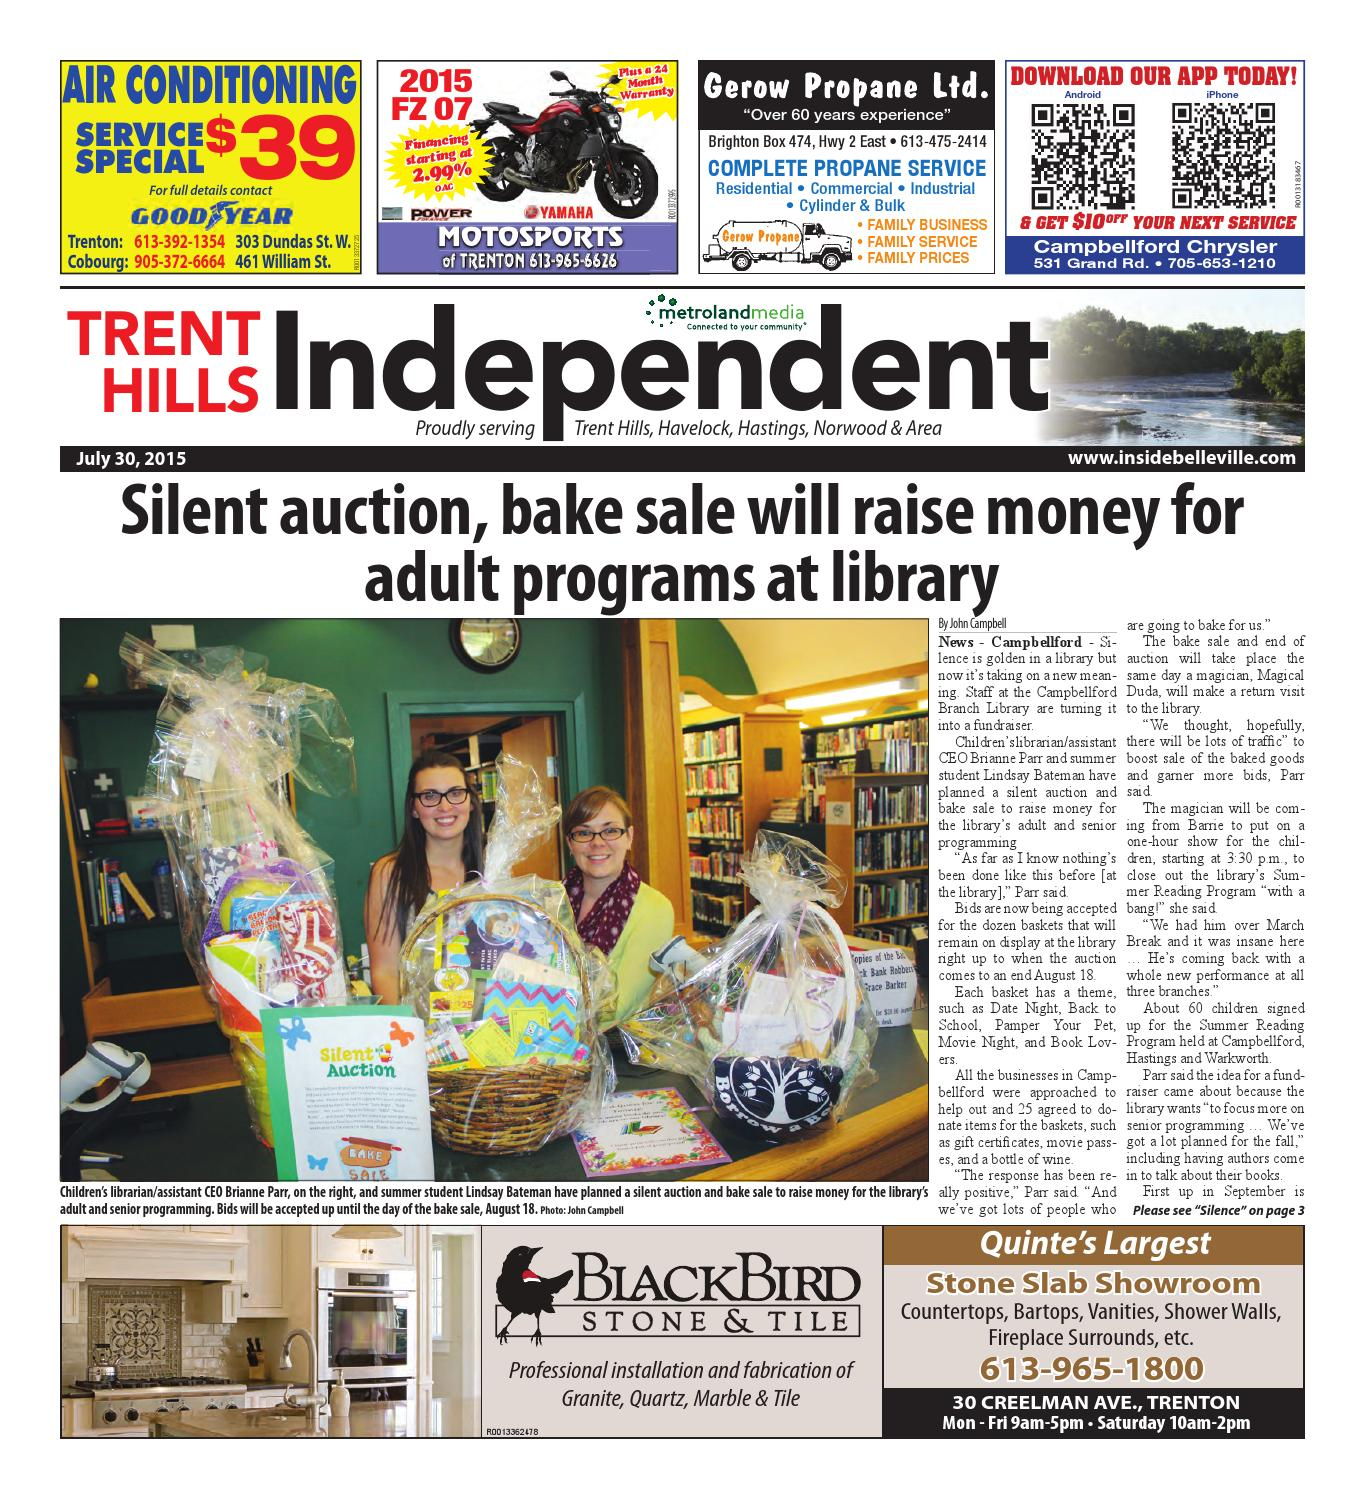 Trenthills073015 by Metroland East - Trent Hills Independent - issuu